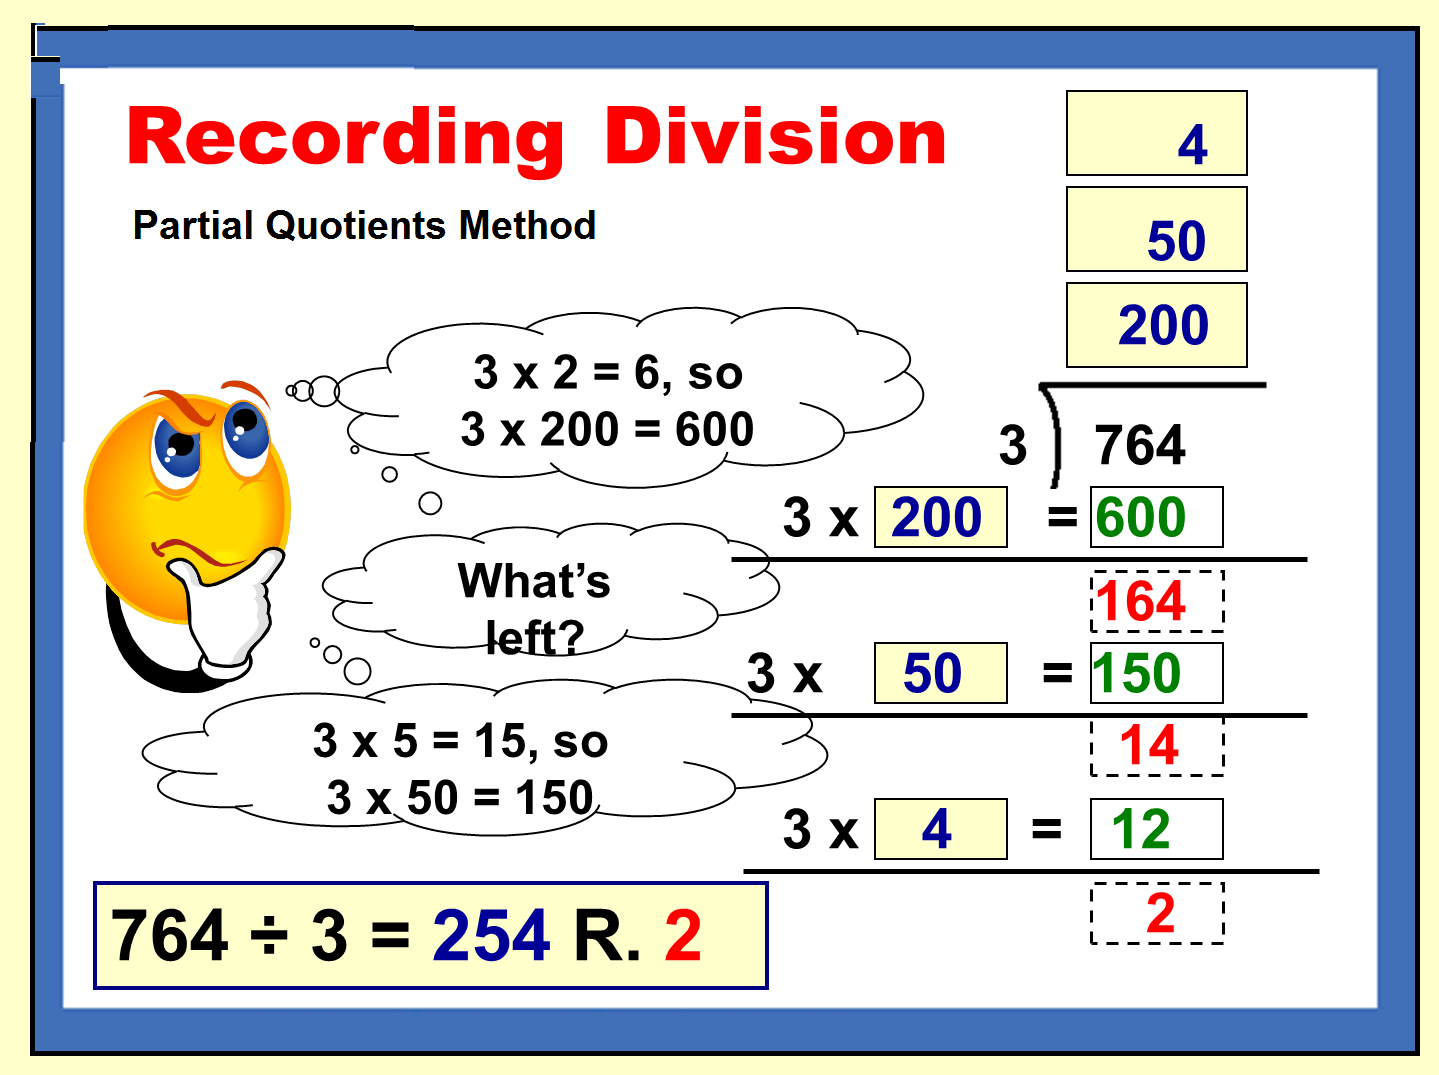 Idevbooks Math Apps Fraction And Division Promo Codes